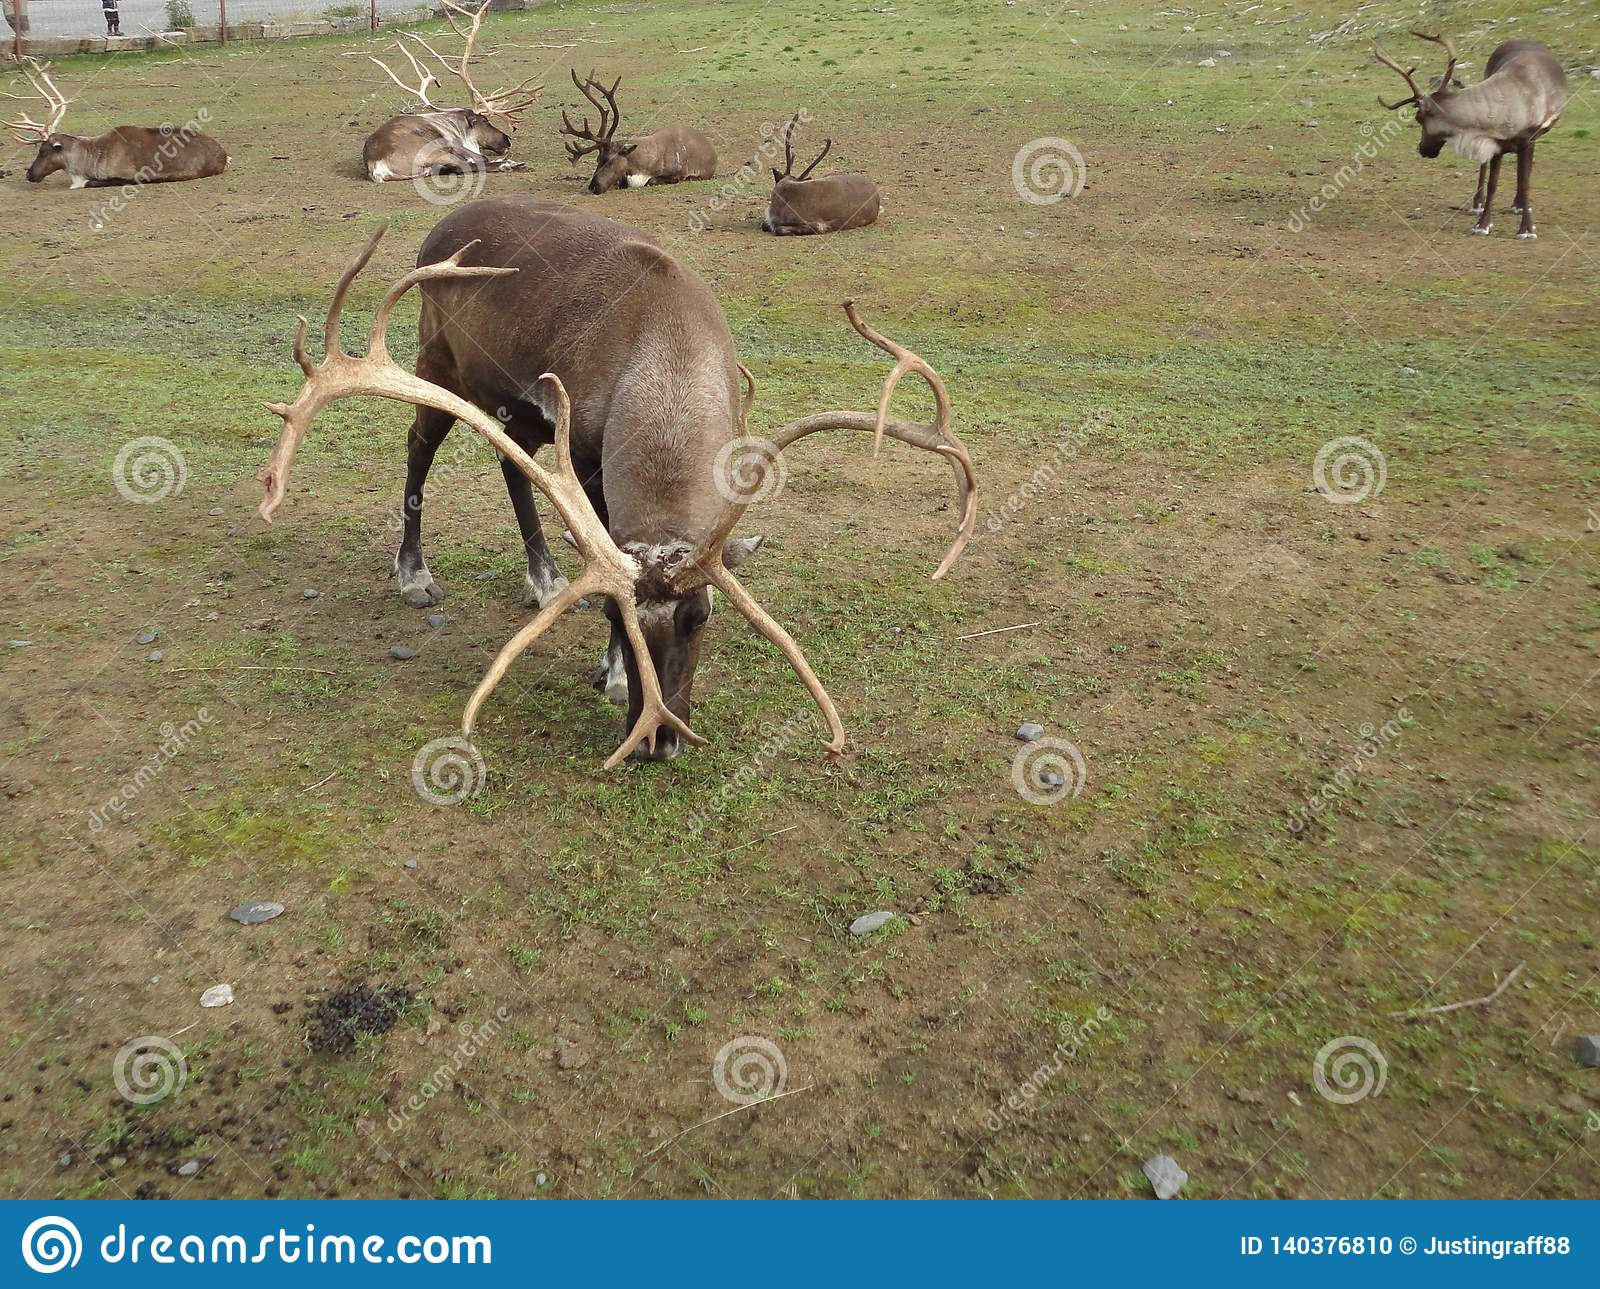 Reindeer Caribou in Alaska grazing in a grassy field. Grouped together as a herd